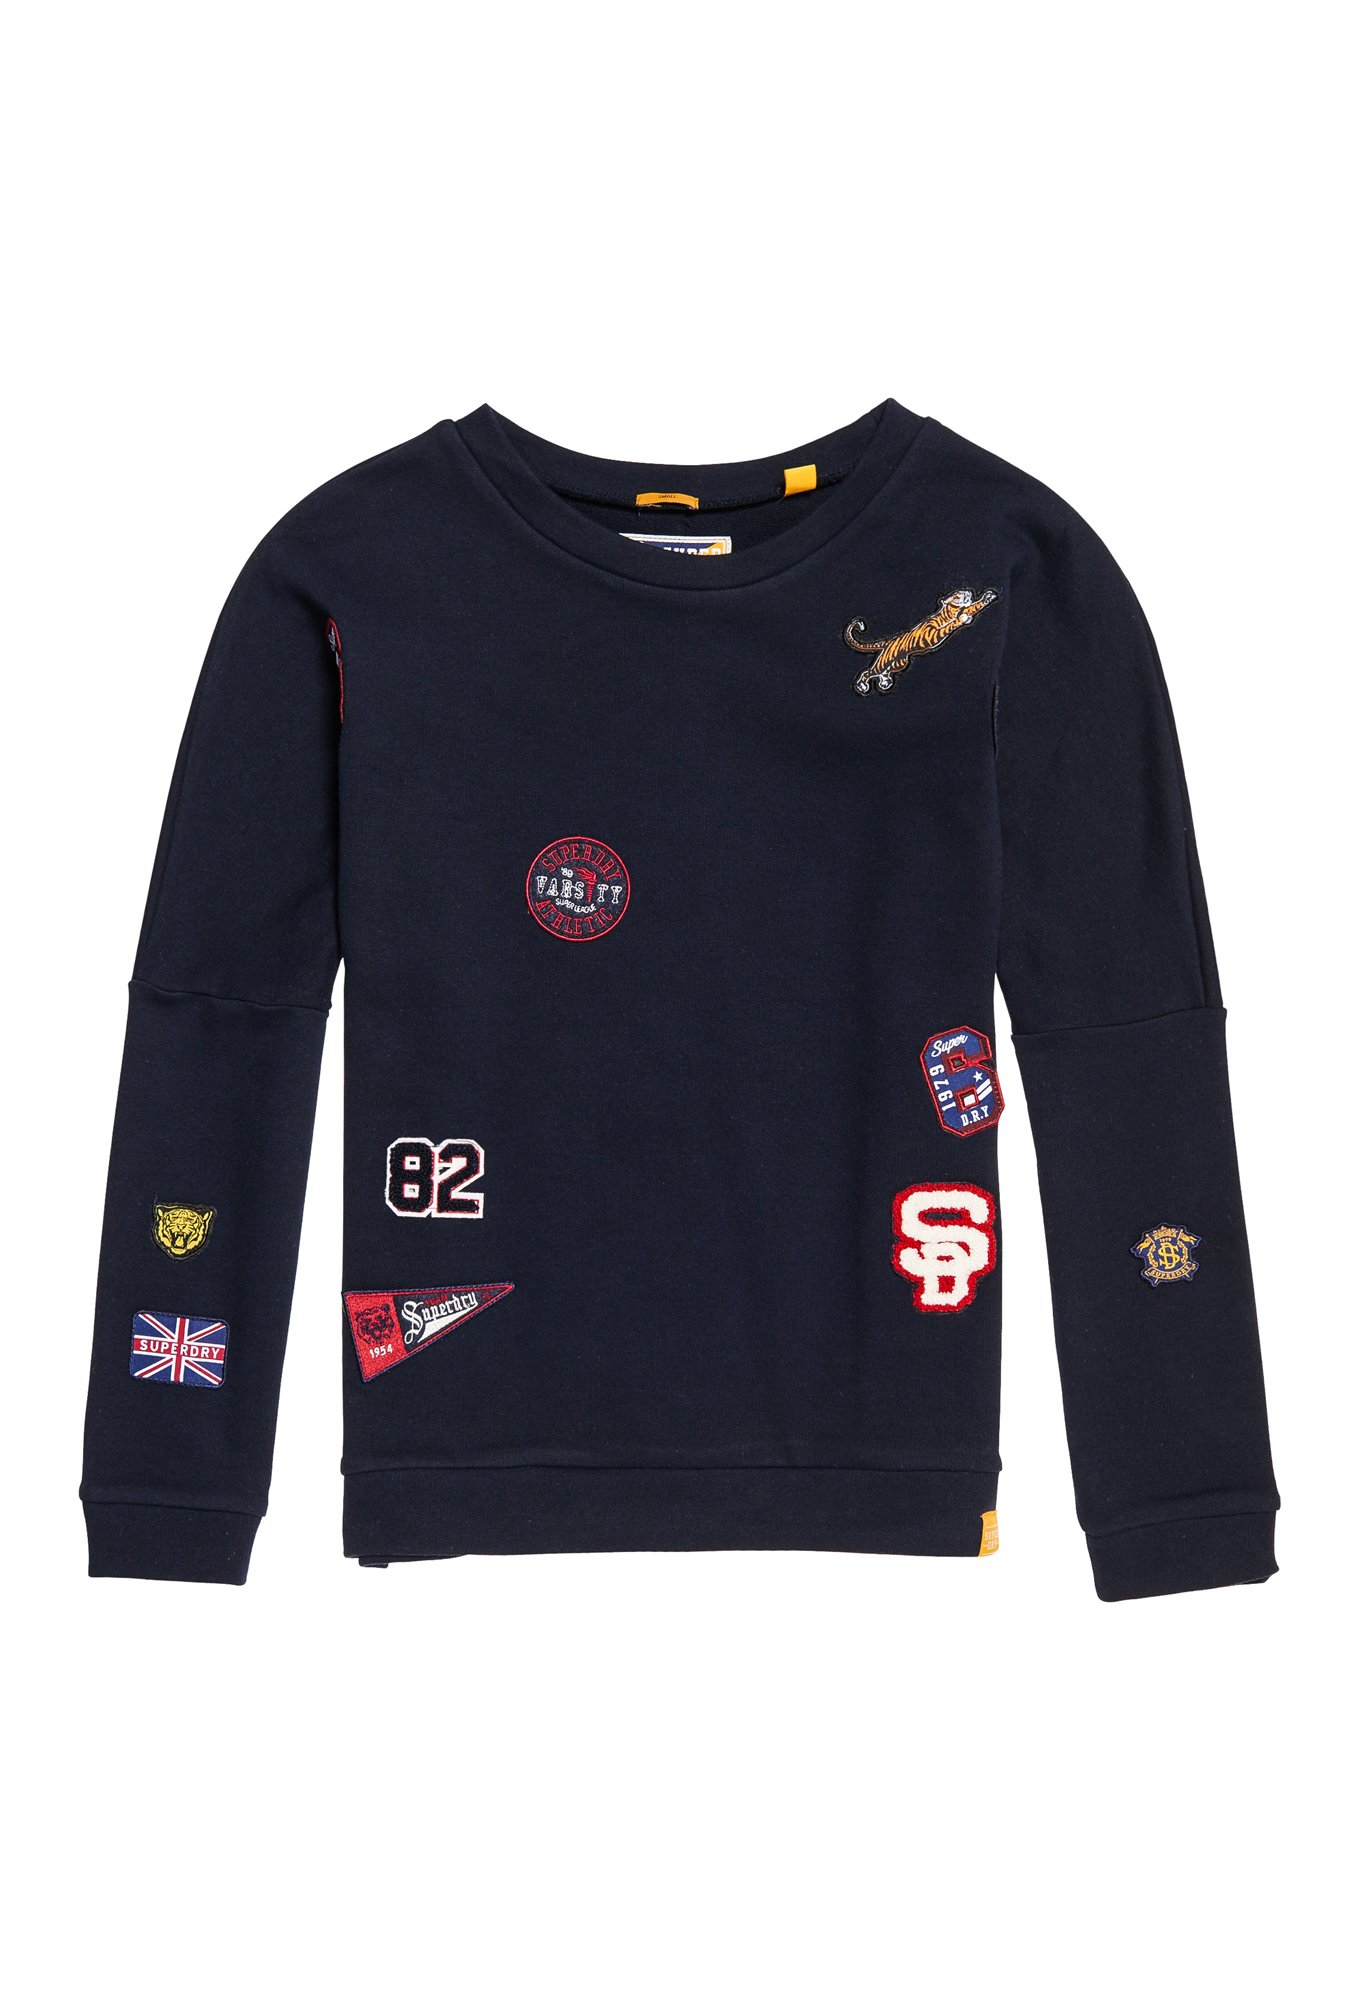 Superdry Navy Patchwork Sweatshirt